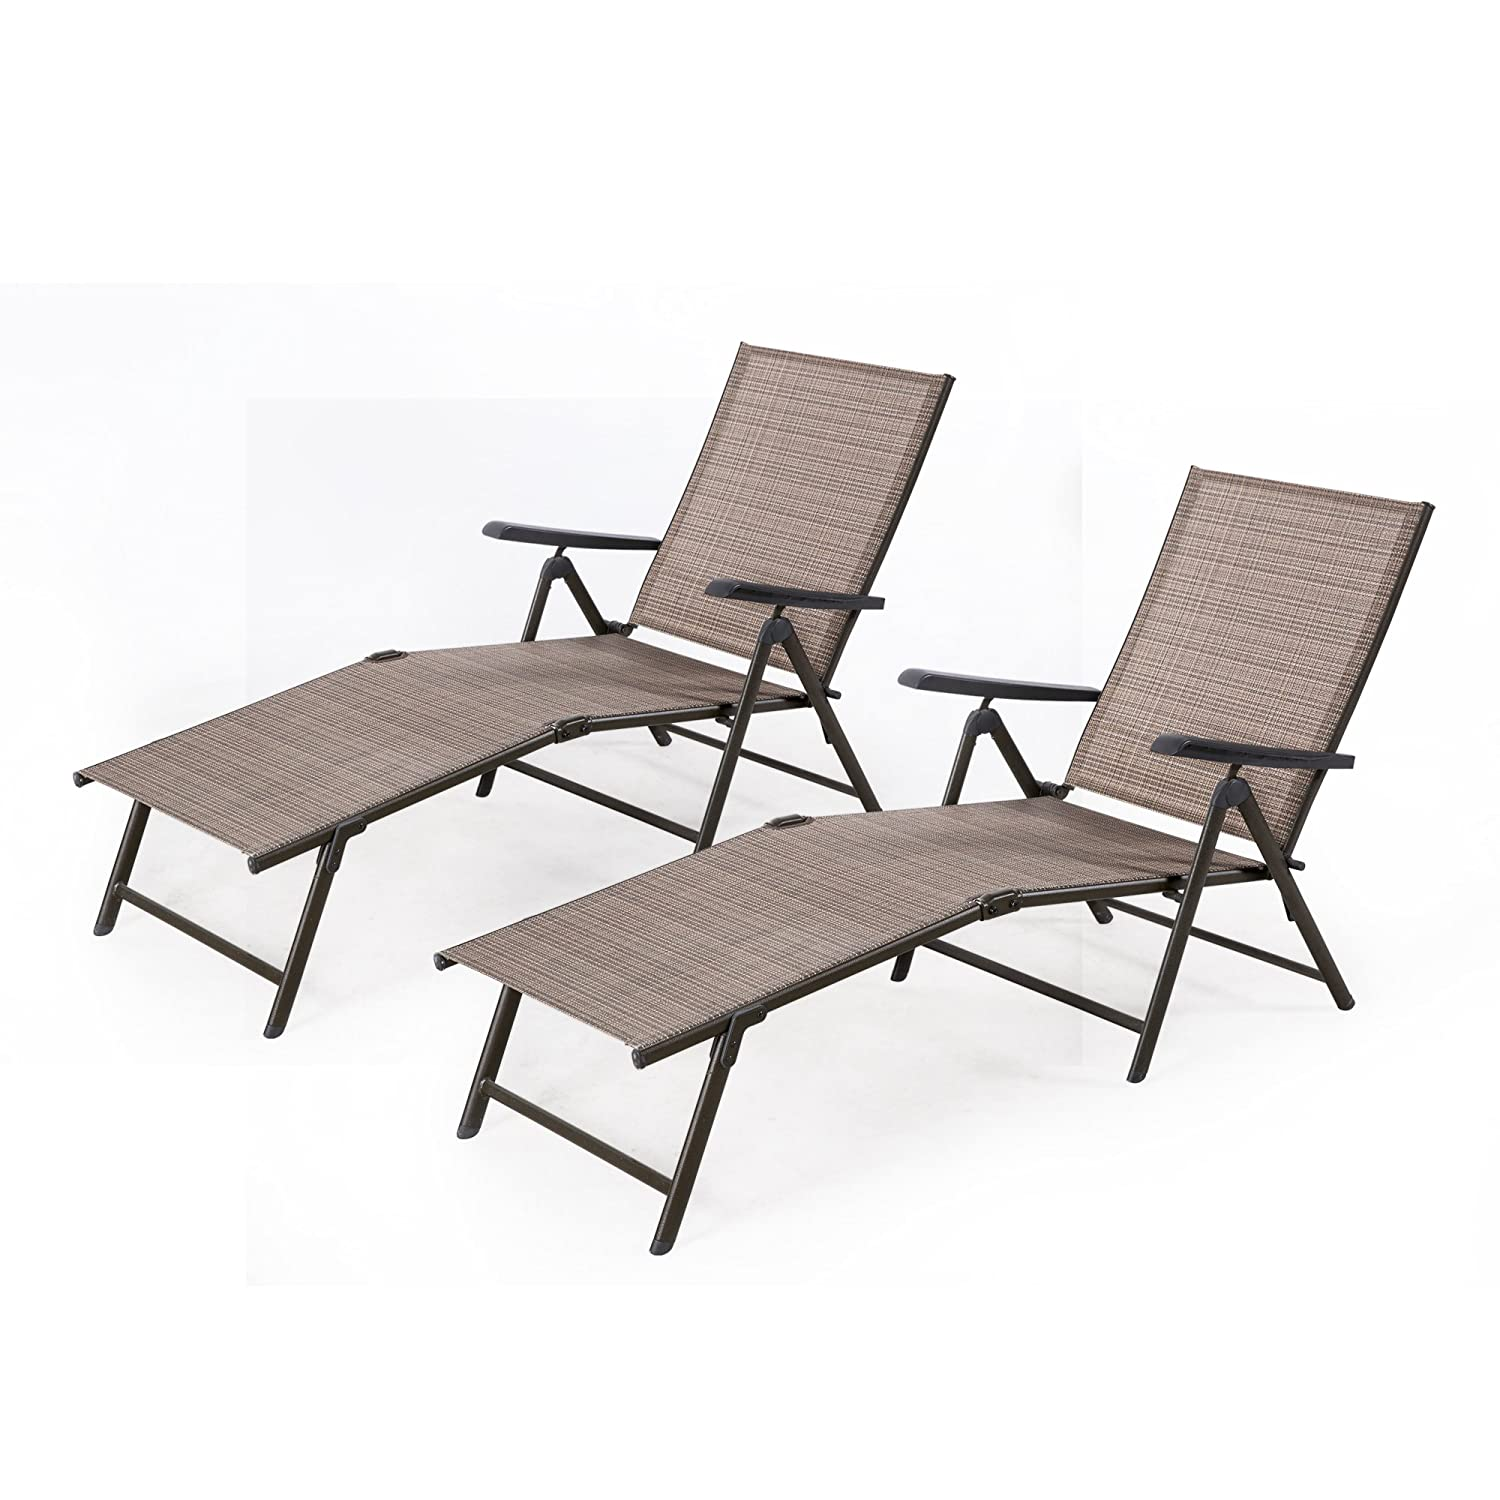 Amazon.com: Lounge Chairs: Patio, Lawn & Garden